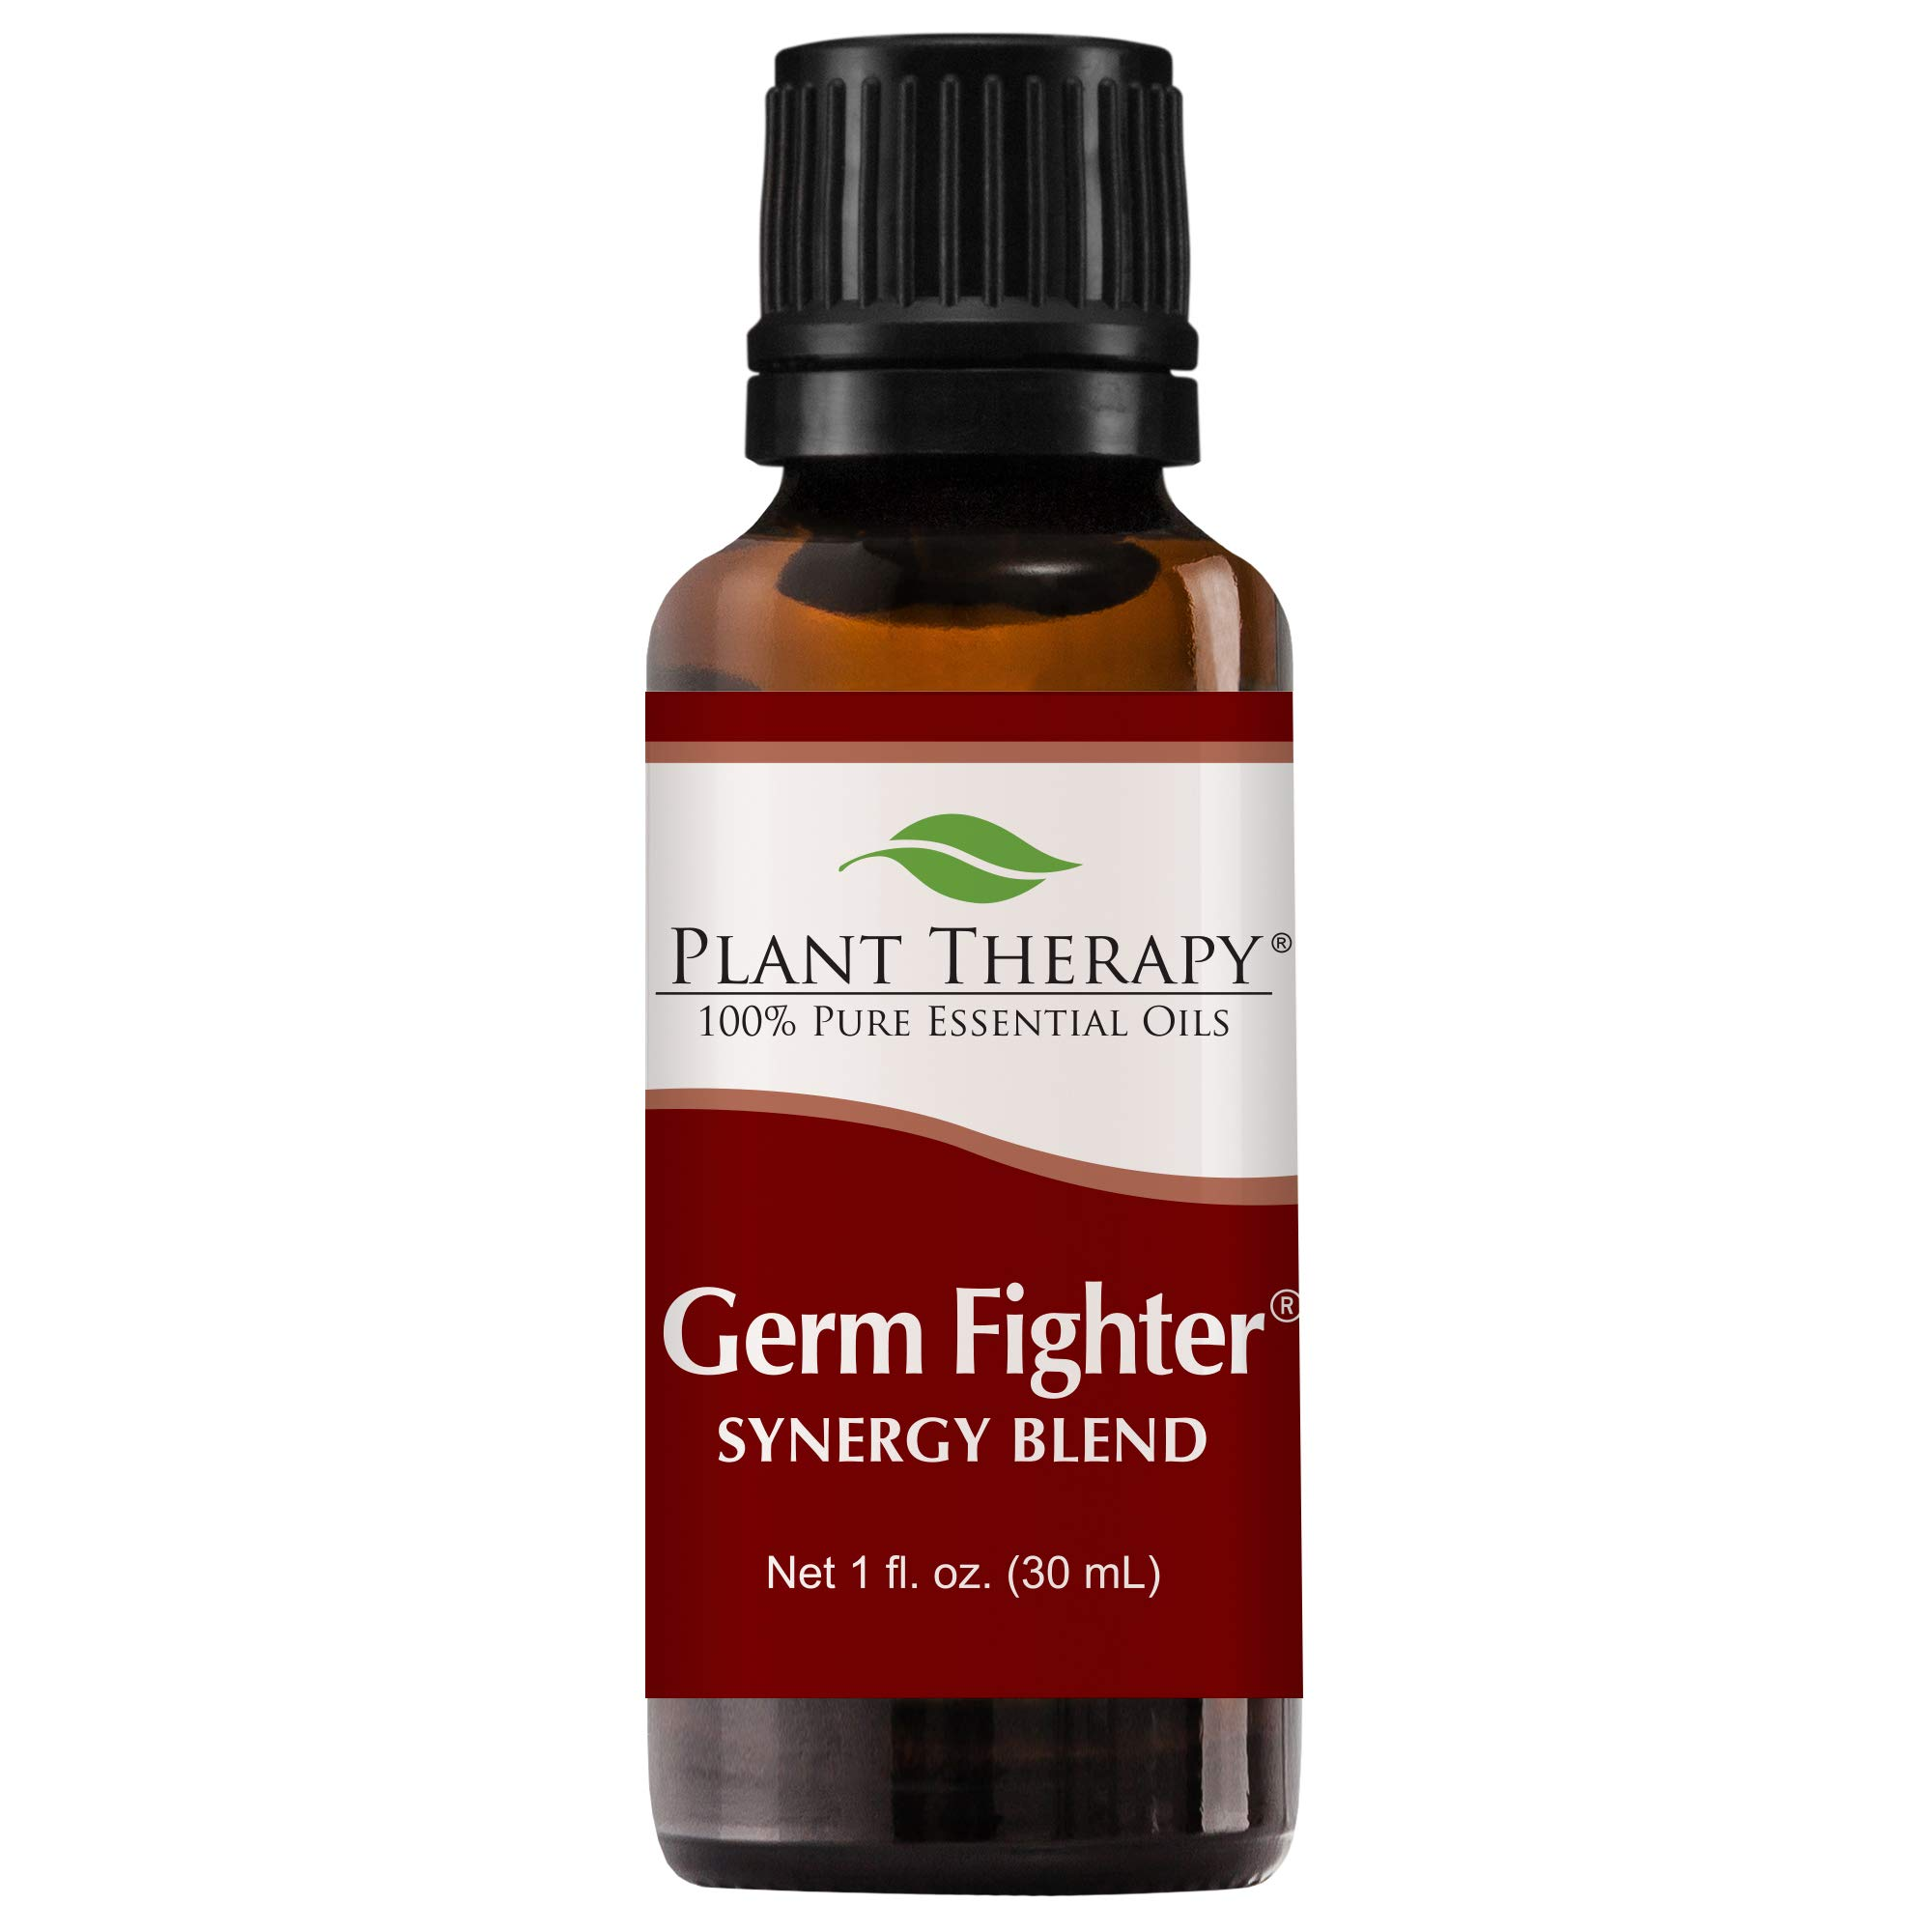 Plant Therapy Essential Oils Germ Fighter Synergy - Sinus Health and Cold Blend 100% Pure, Undiluted, Natural Aromatherapy, Therapeutic Grade 30 mL (1 oz)